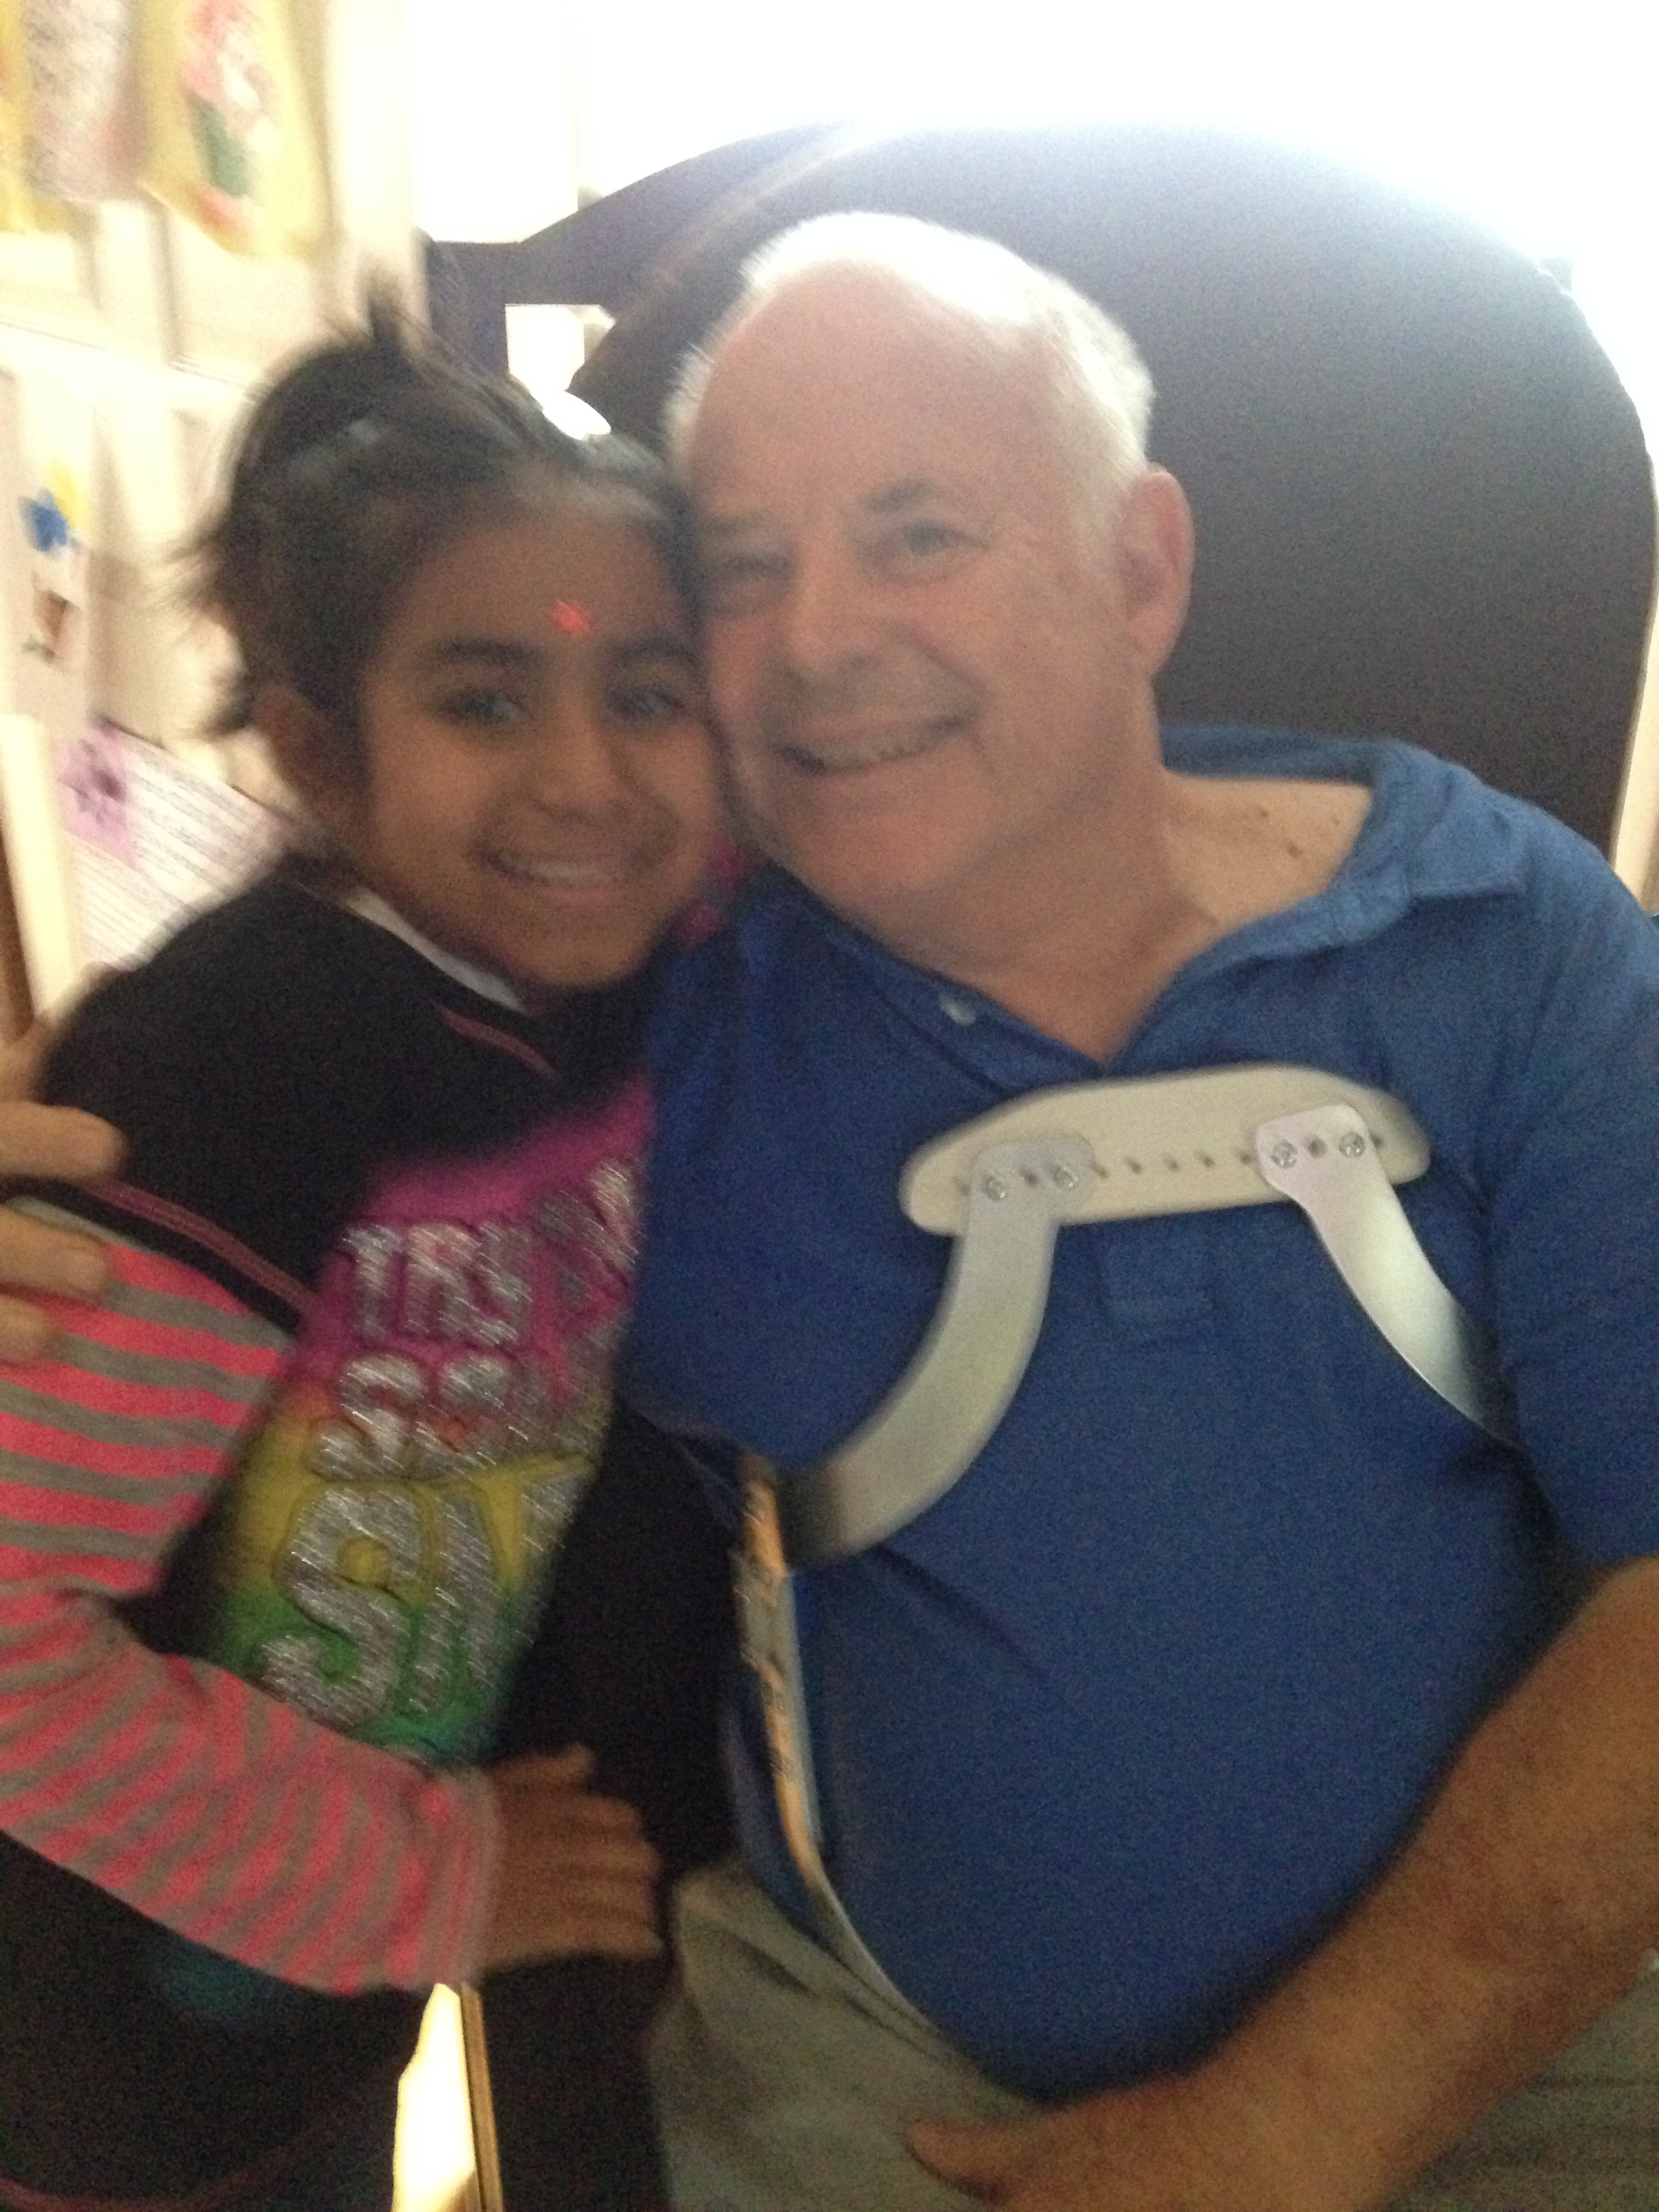 The dialysis children come visit me often. This is Cindy